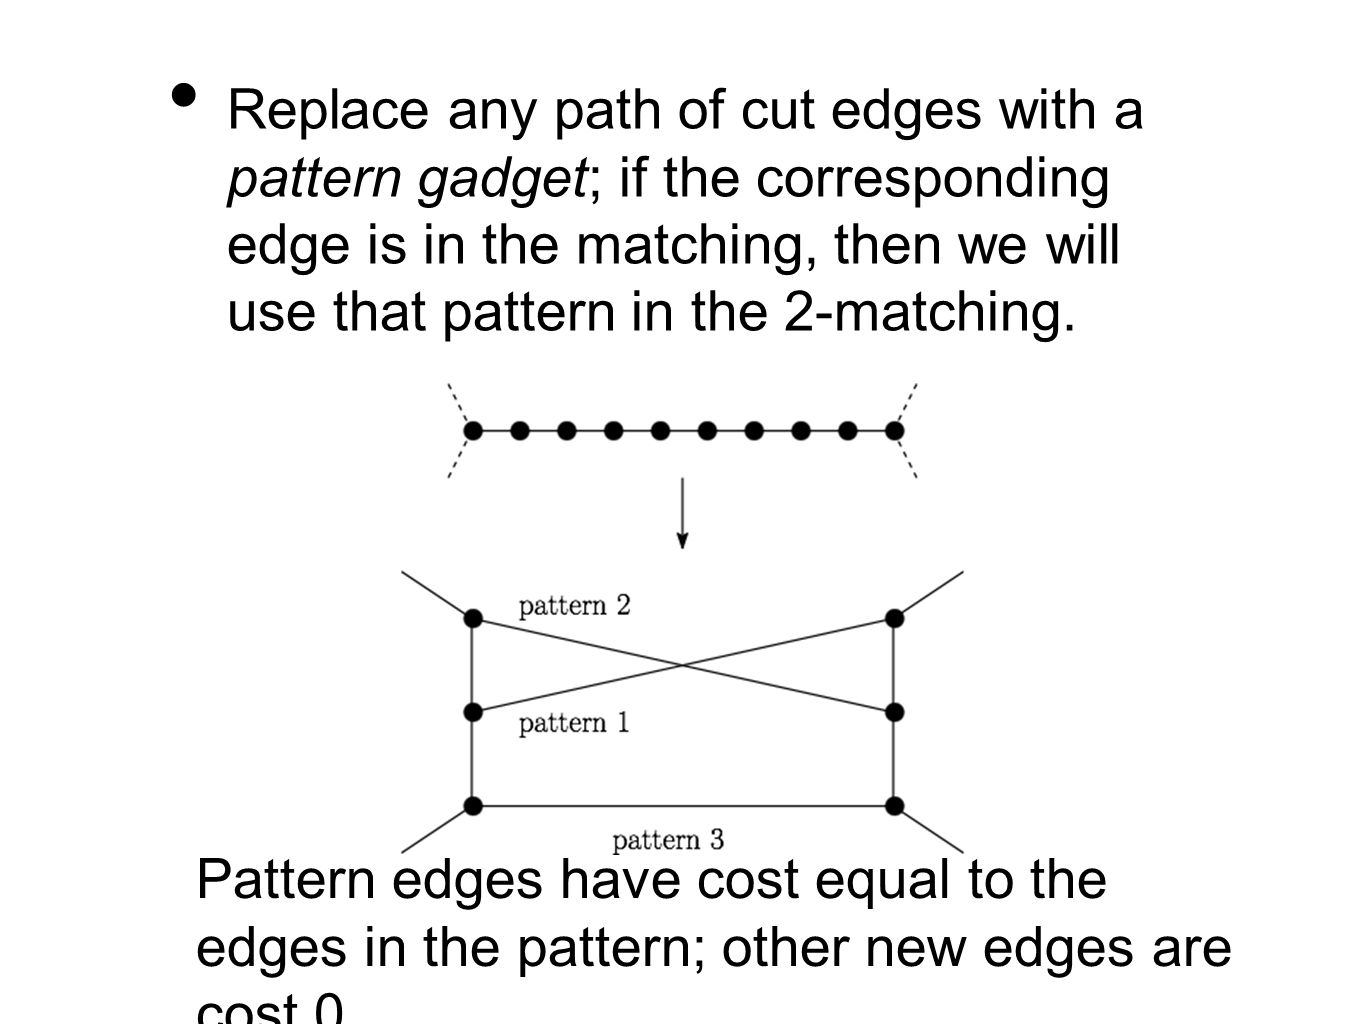 Replace any path of cut edges with a pattern gadget; if the corresponding edge is in the matching, then we will use that pattern in the 2-matching.